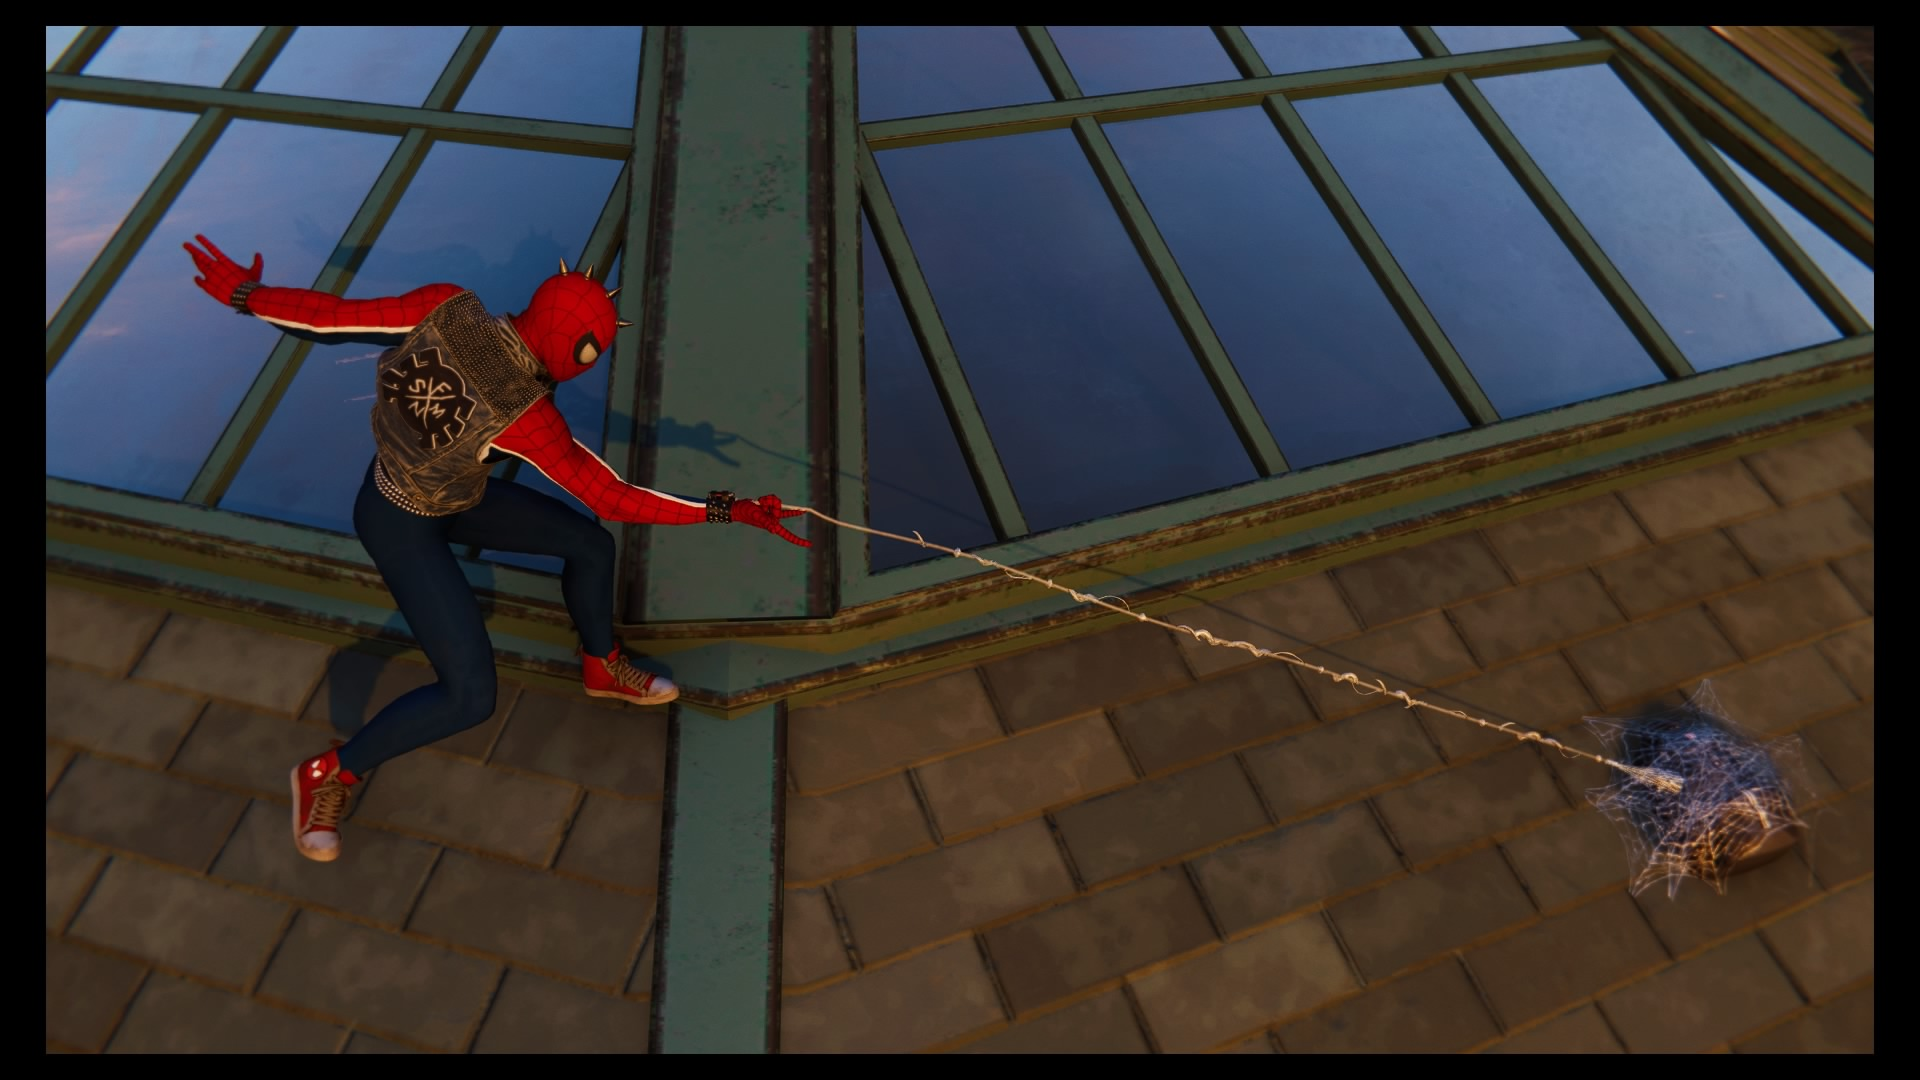 Dear Spider-Man, we need to talk about your backpack hoarding - The